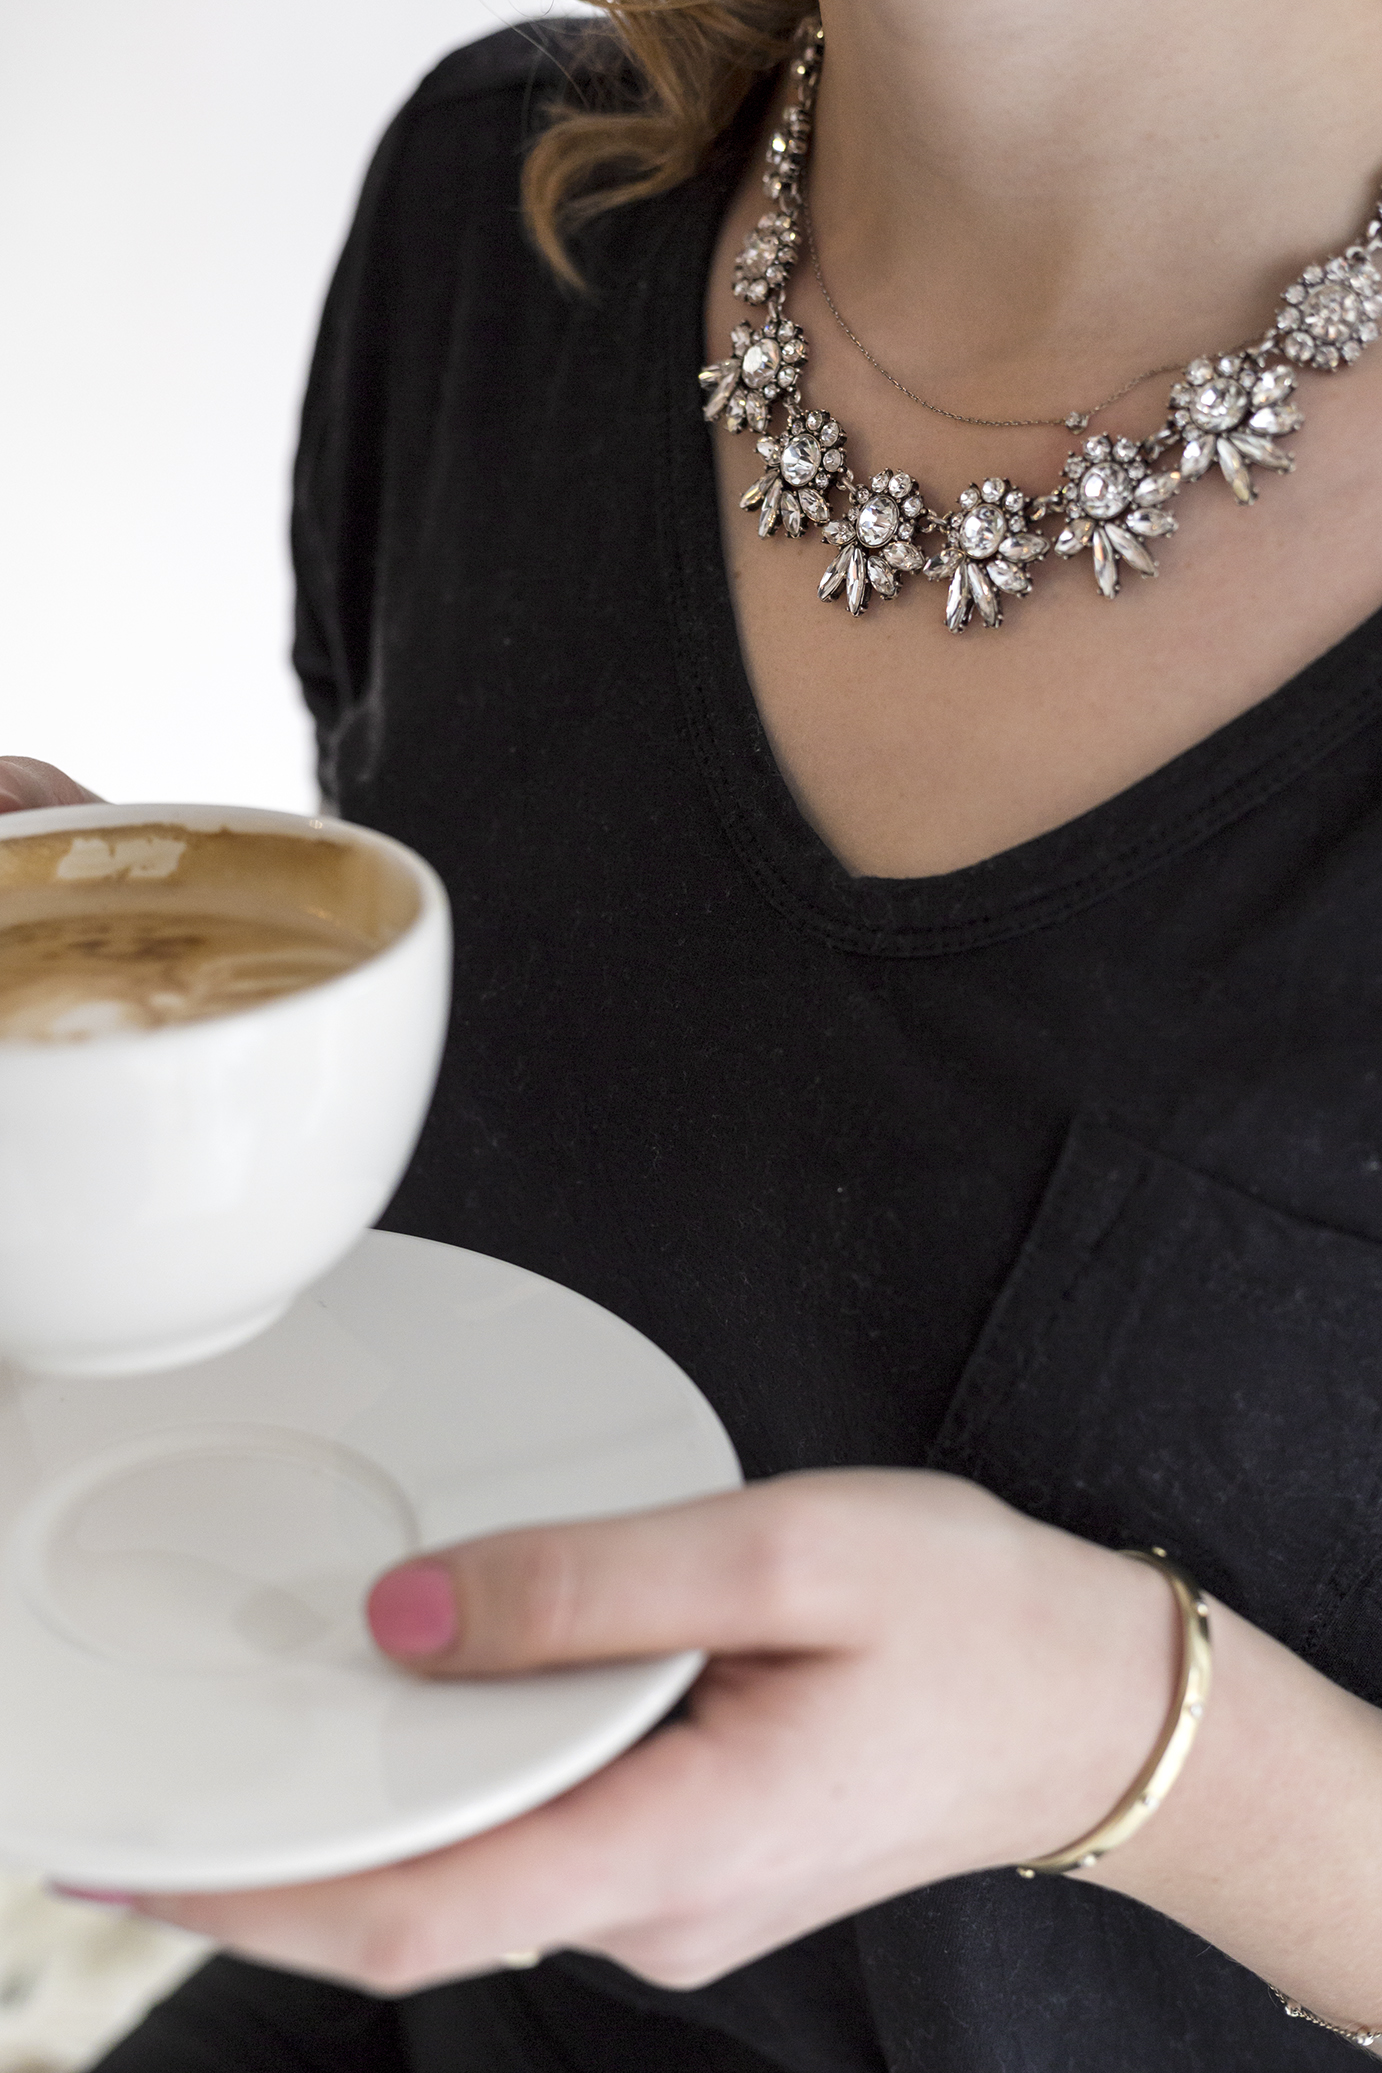 Coffee and beautiful necklace from HappyBoutique